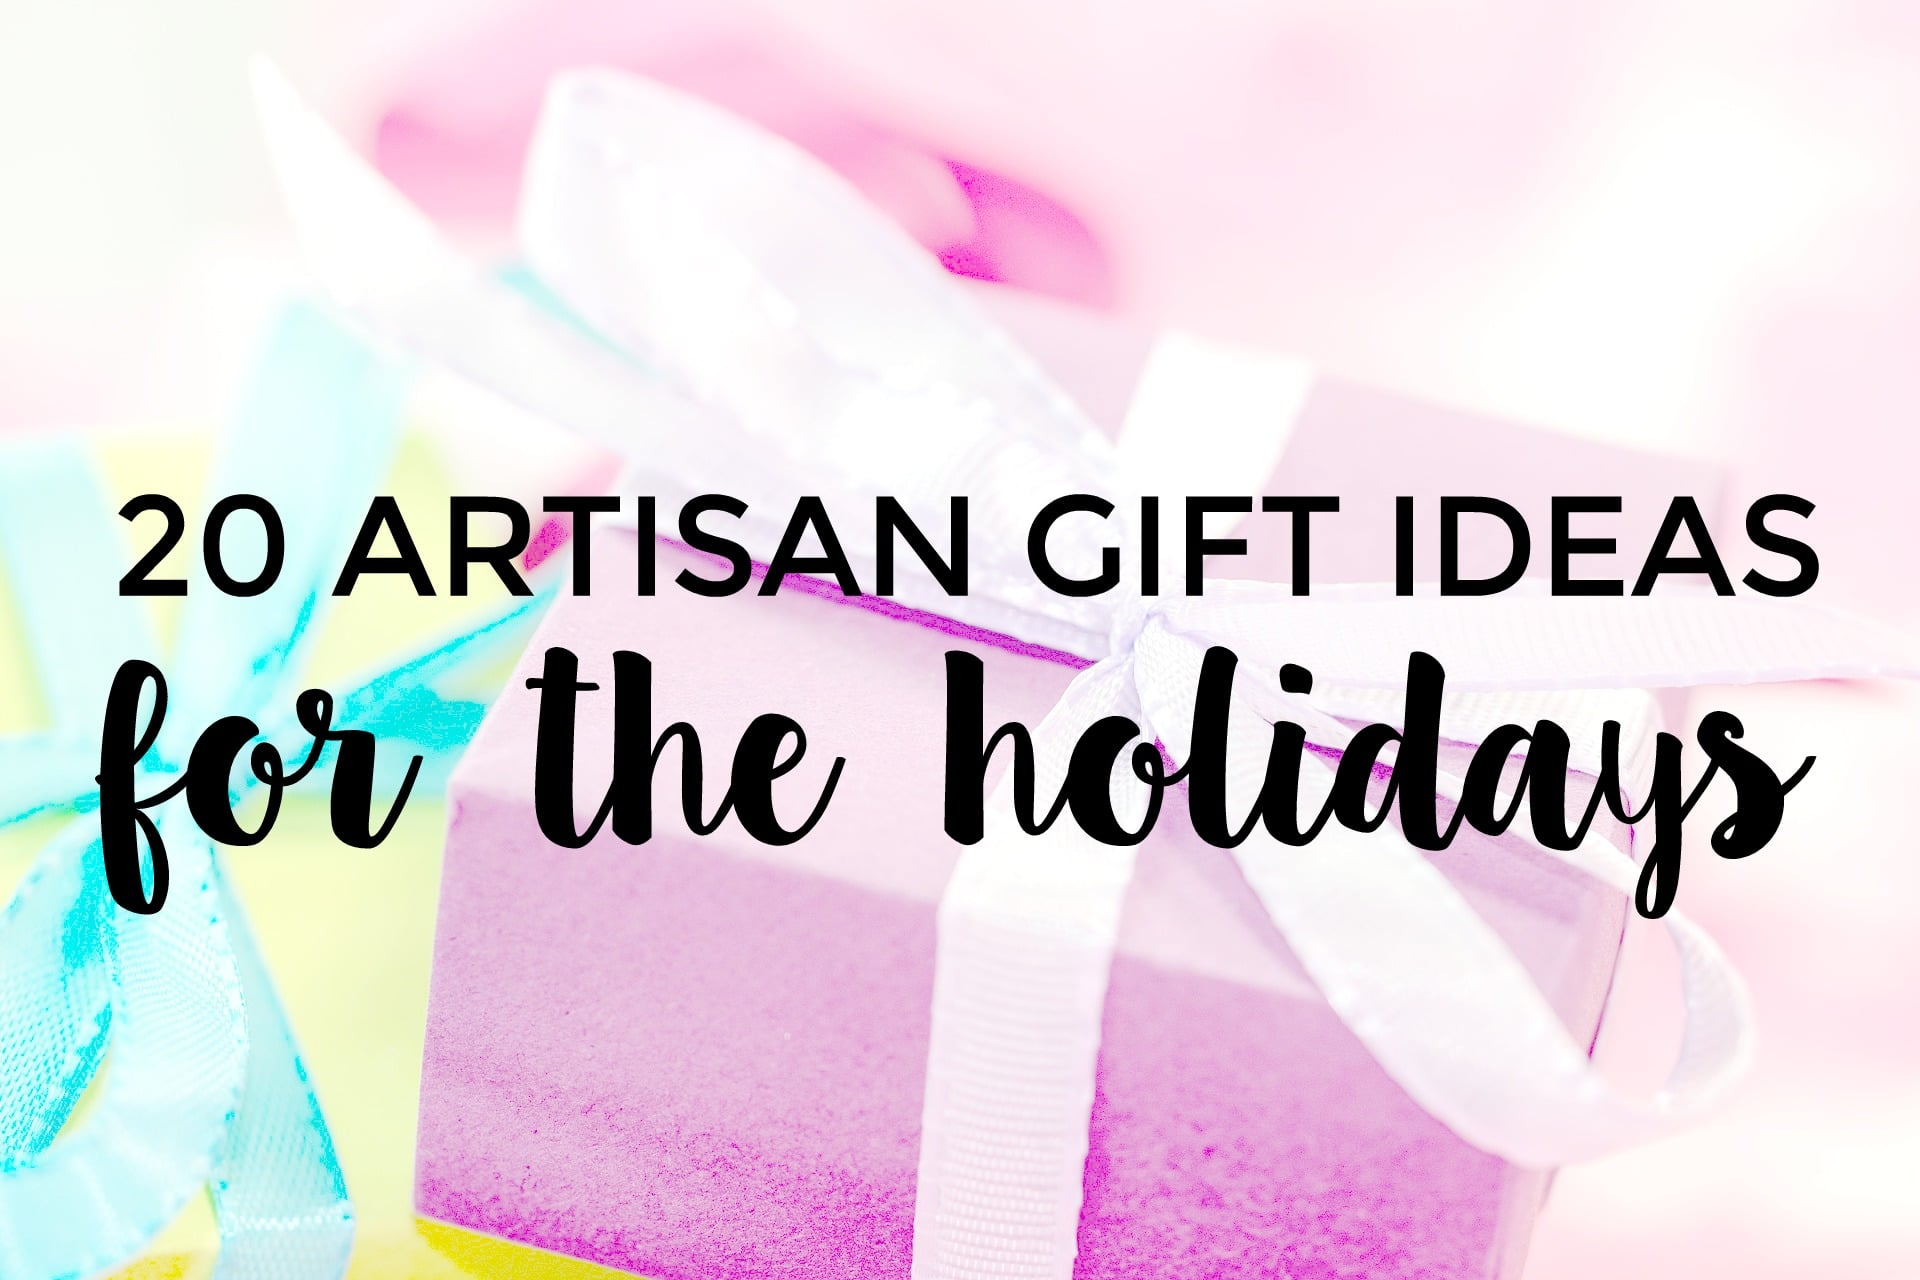 20 Artisan gift ideas for the holidays, birthdays, and beyond.